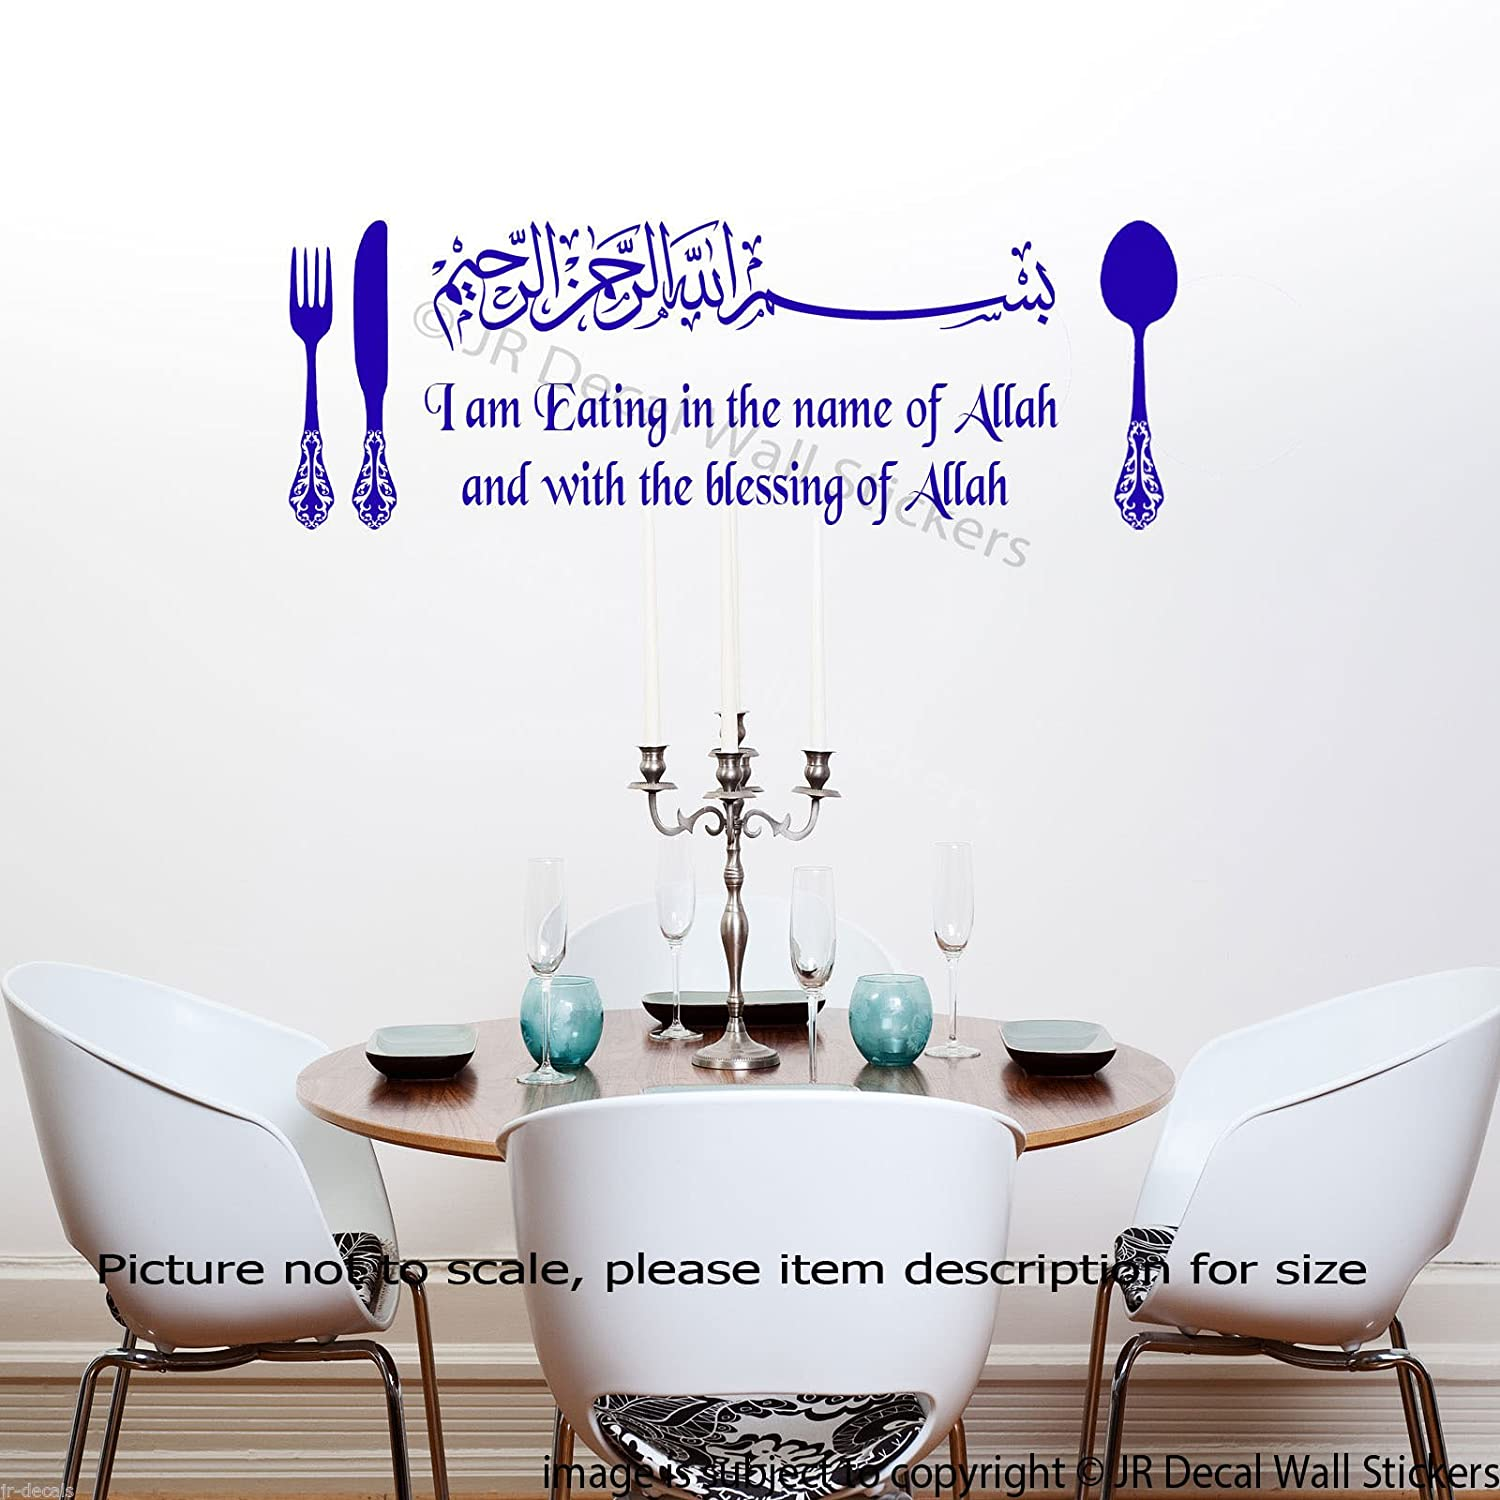 Amazon.com: DINING KITCHEN ISLAMIC Wall Art Stickers Bismillah With ...